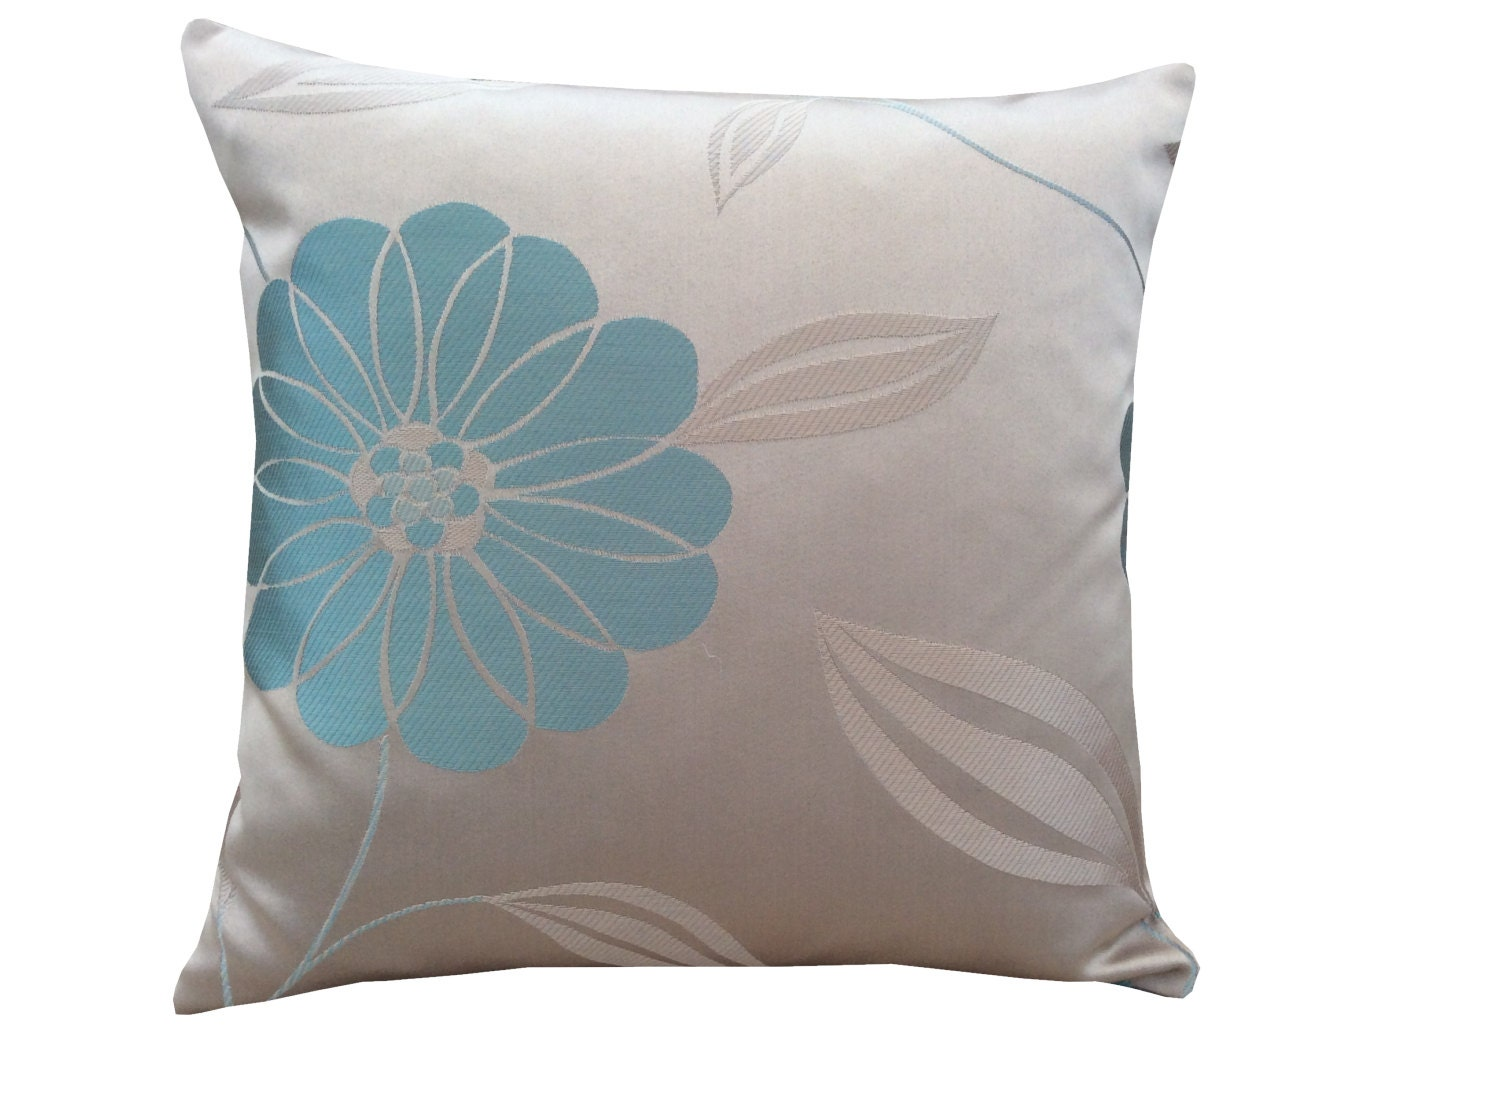 Stunning hand made cushion cover Pillow case made from Marbella fabric in beige brown cream  duck egg flowers floral home bedroom lounge